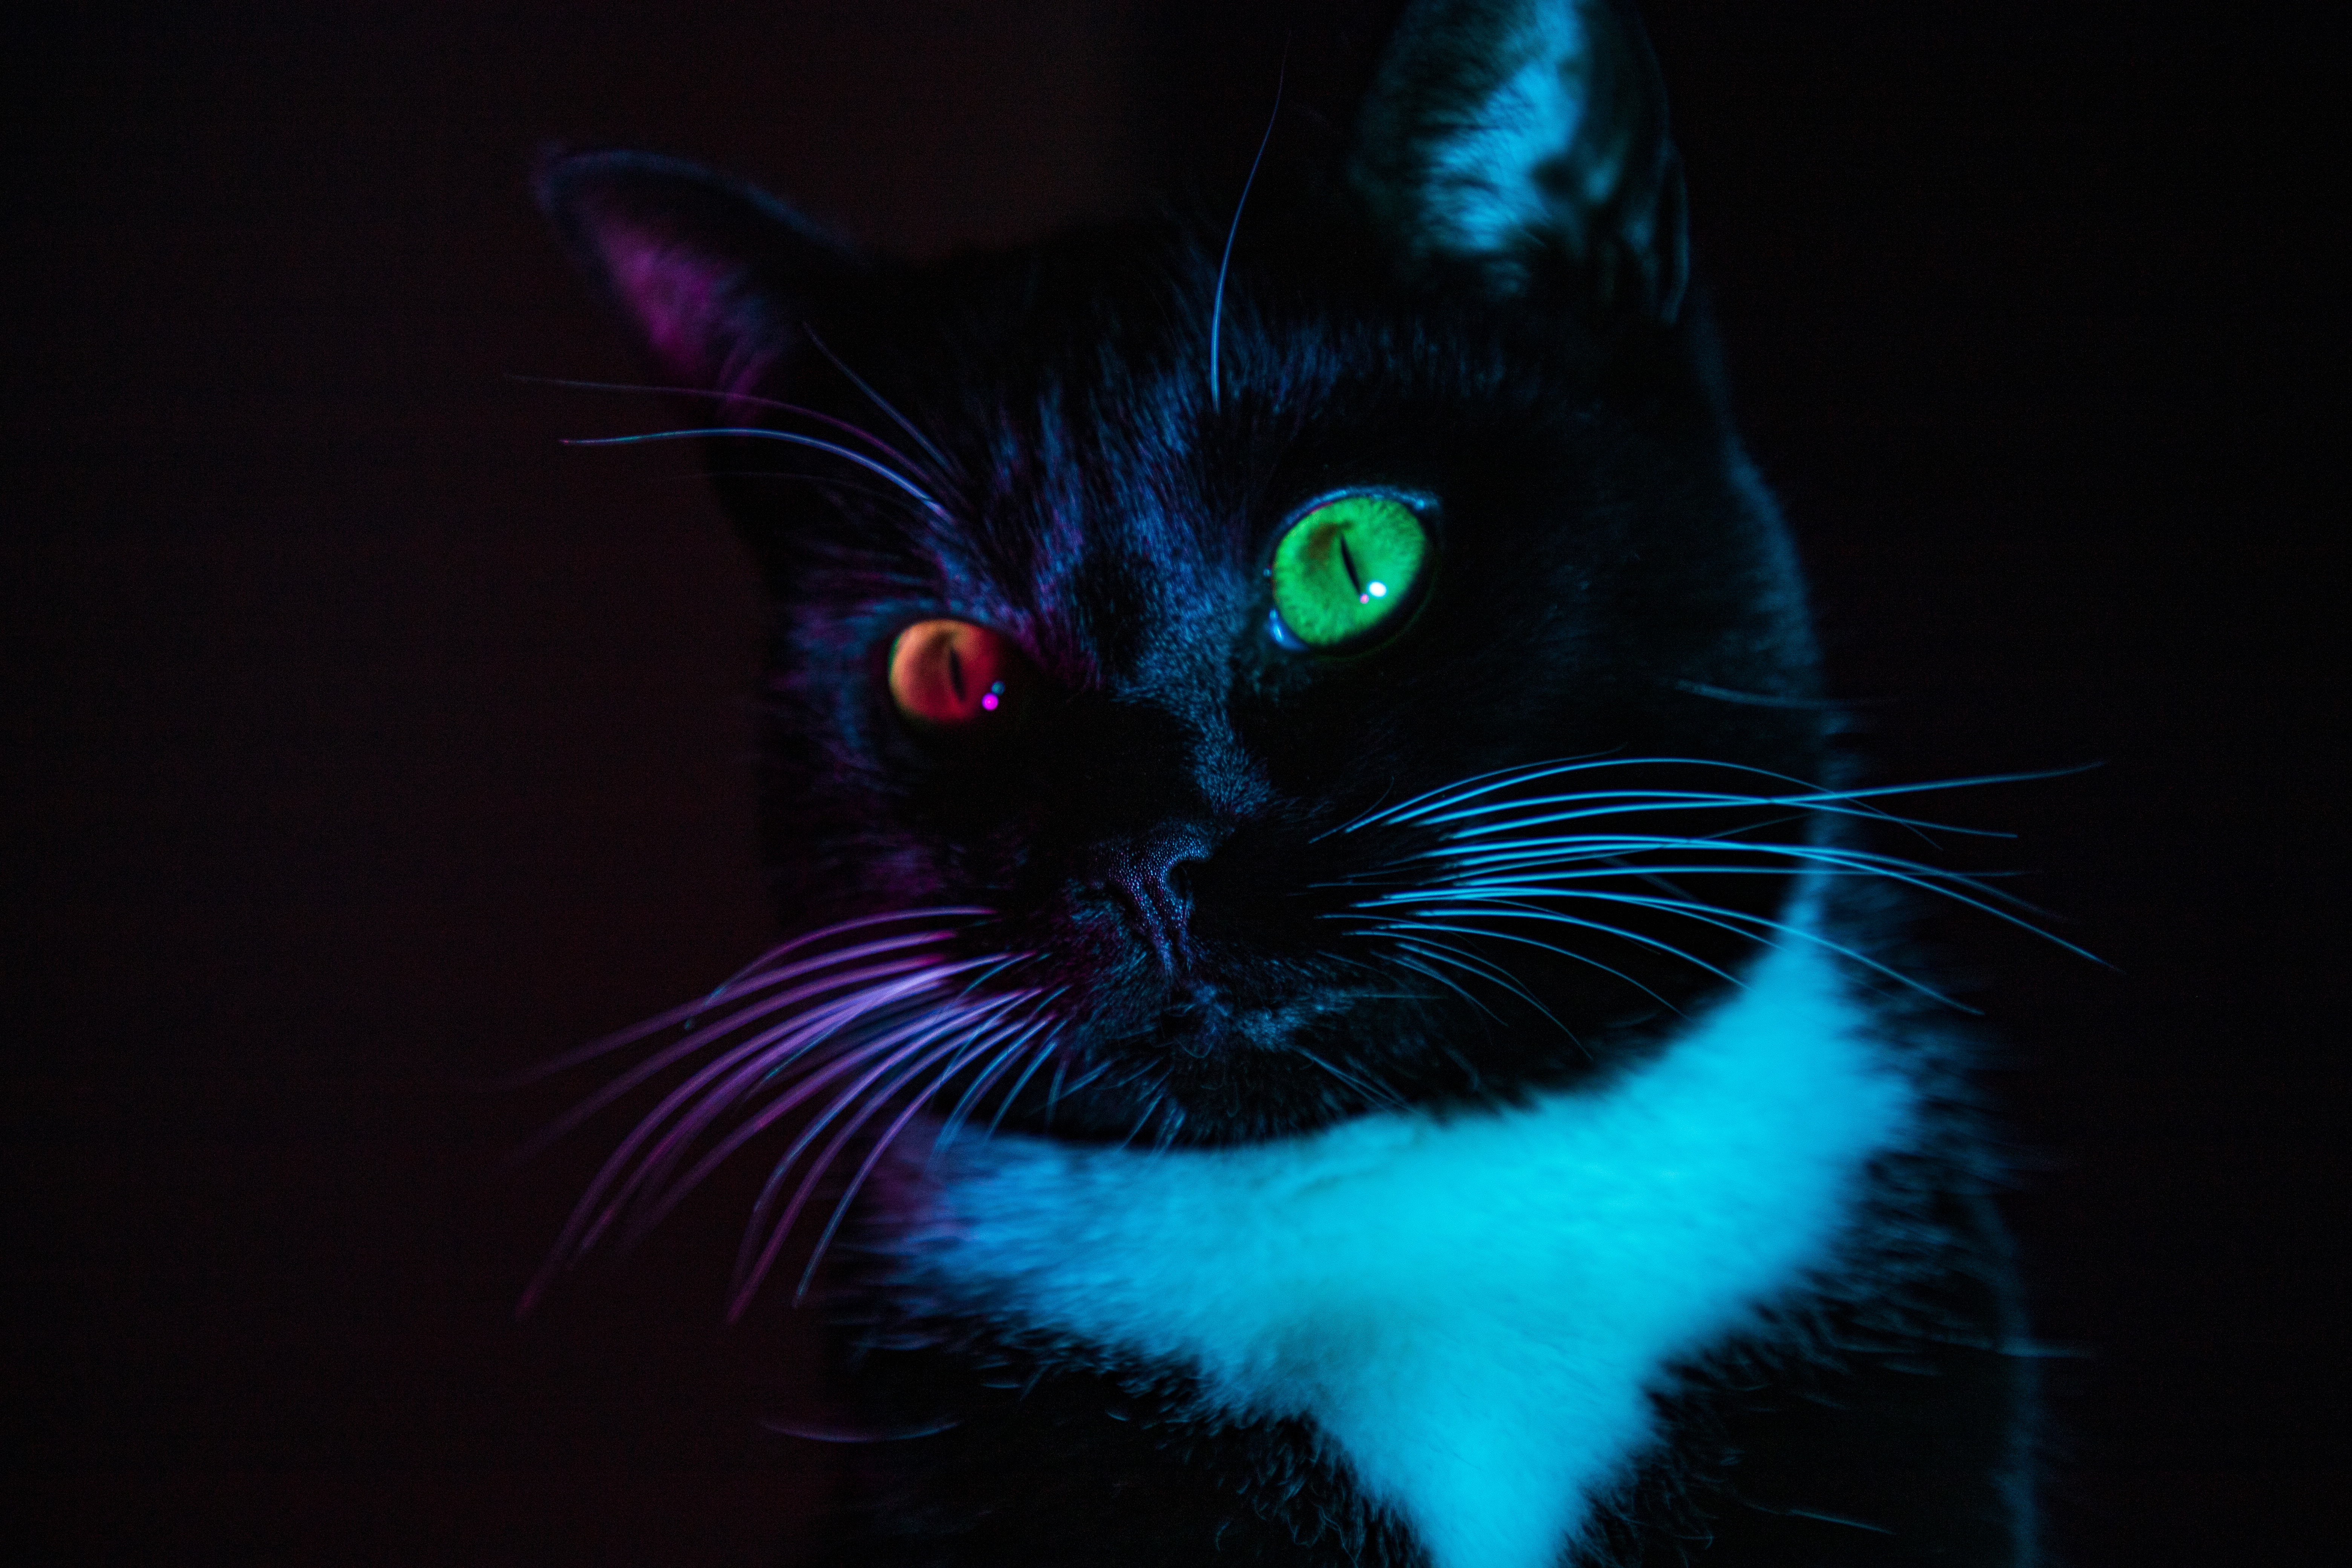 139424 download wallpaper Animals, Cat, Heterochromia, Eyes, Multicolored, Motley, Sight, Opinion screensavers and pictures for free